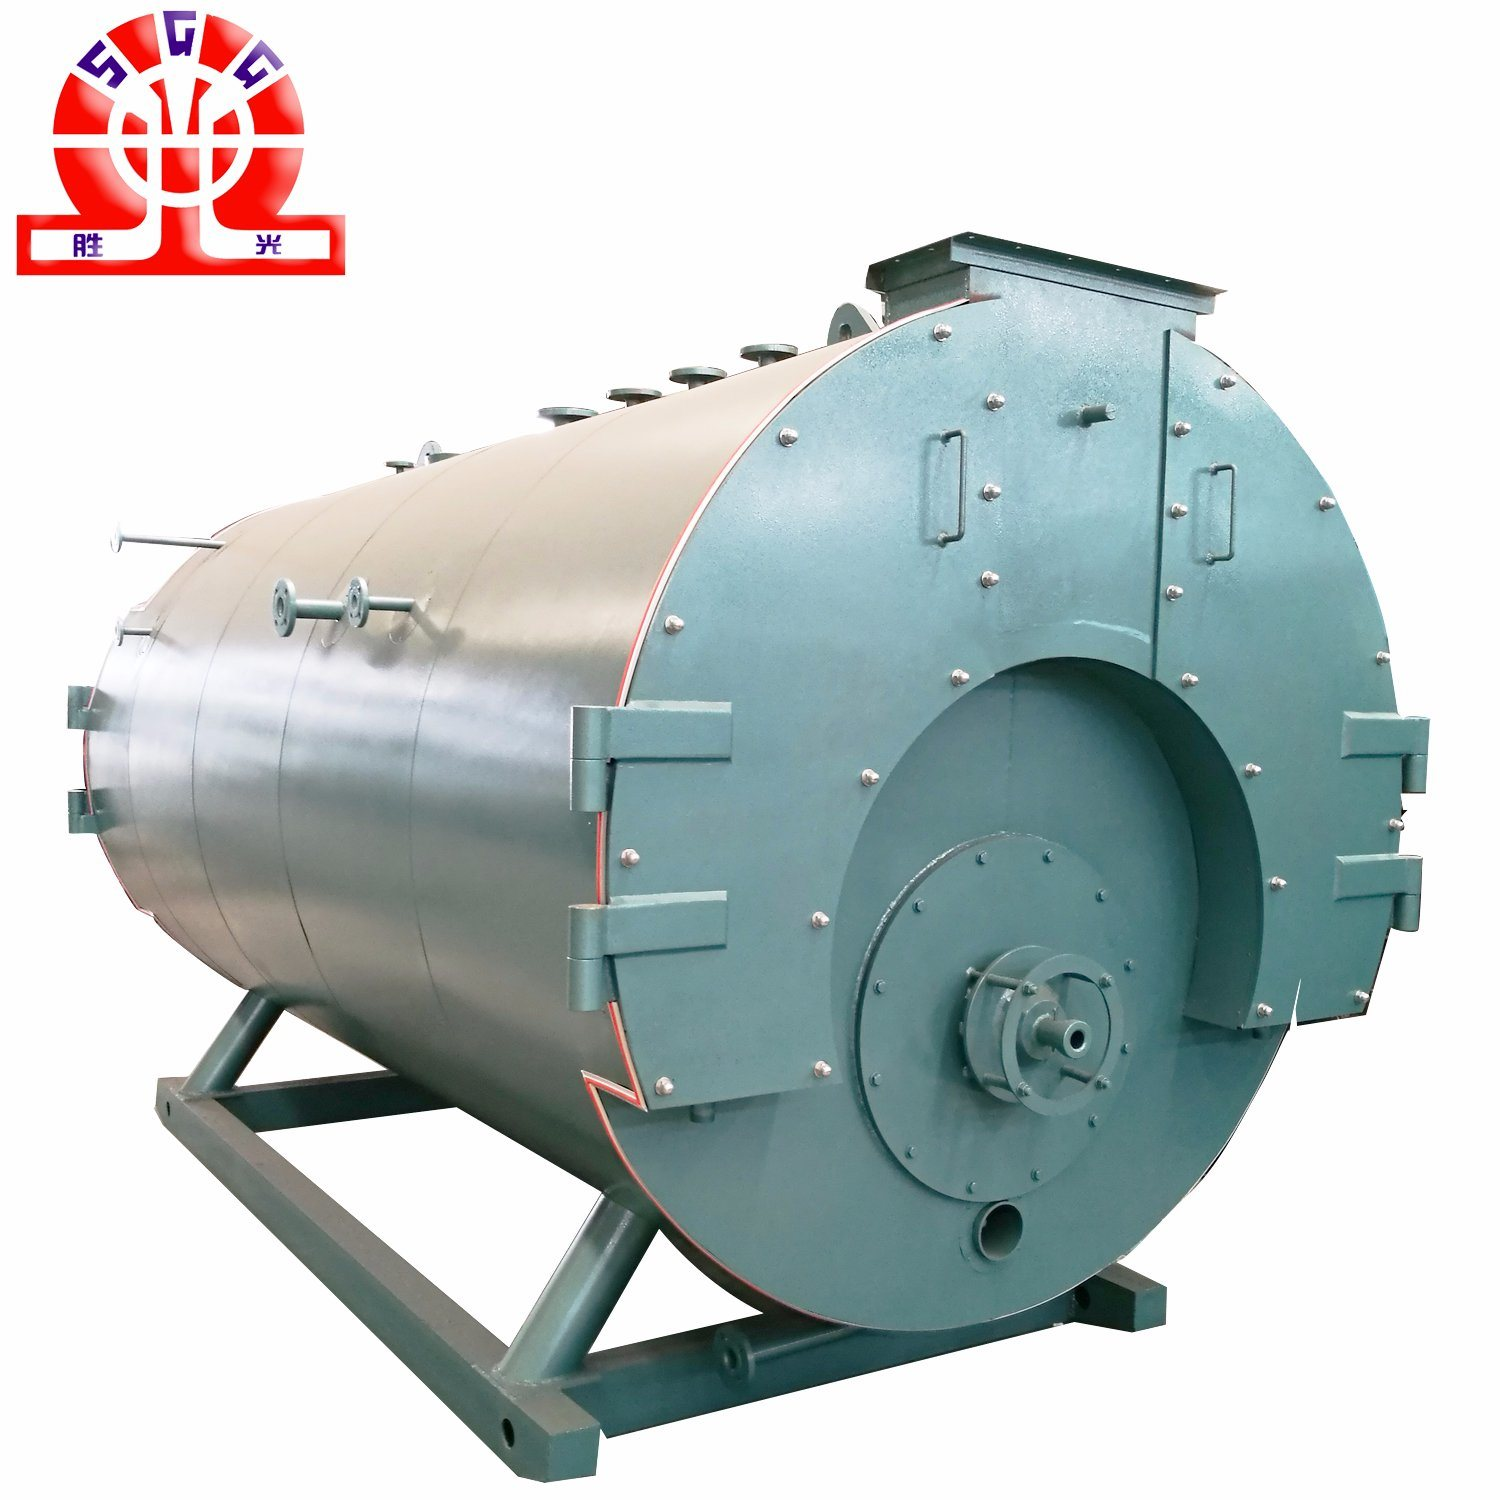 China 2.8MW Single Drum Gas or Oil Wns Hot Water Boiler - China ...